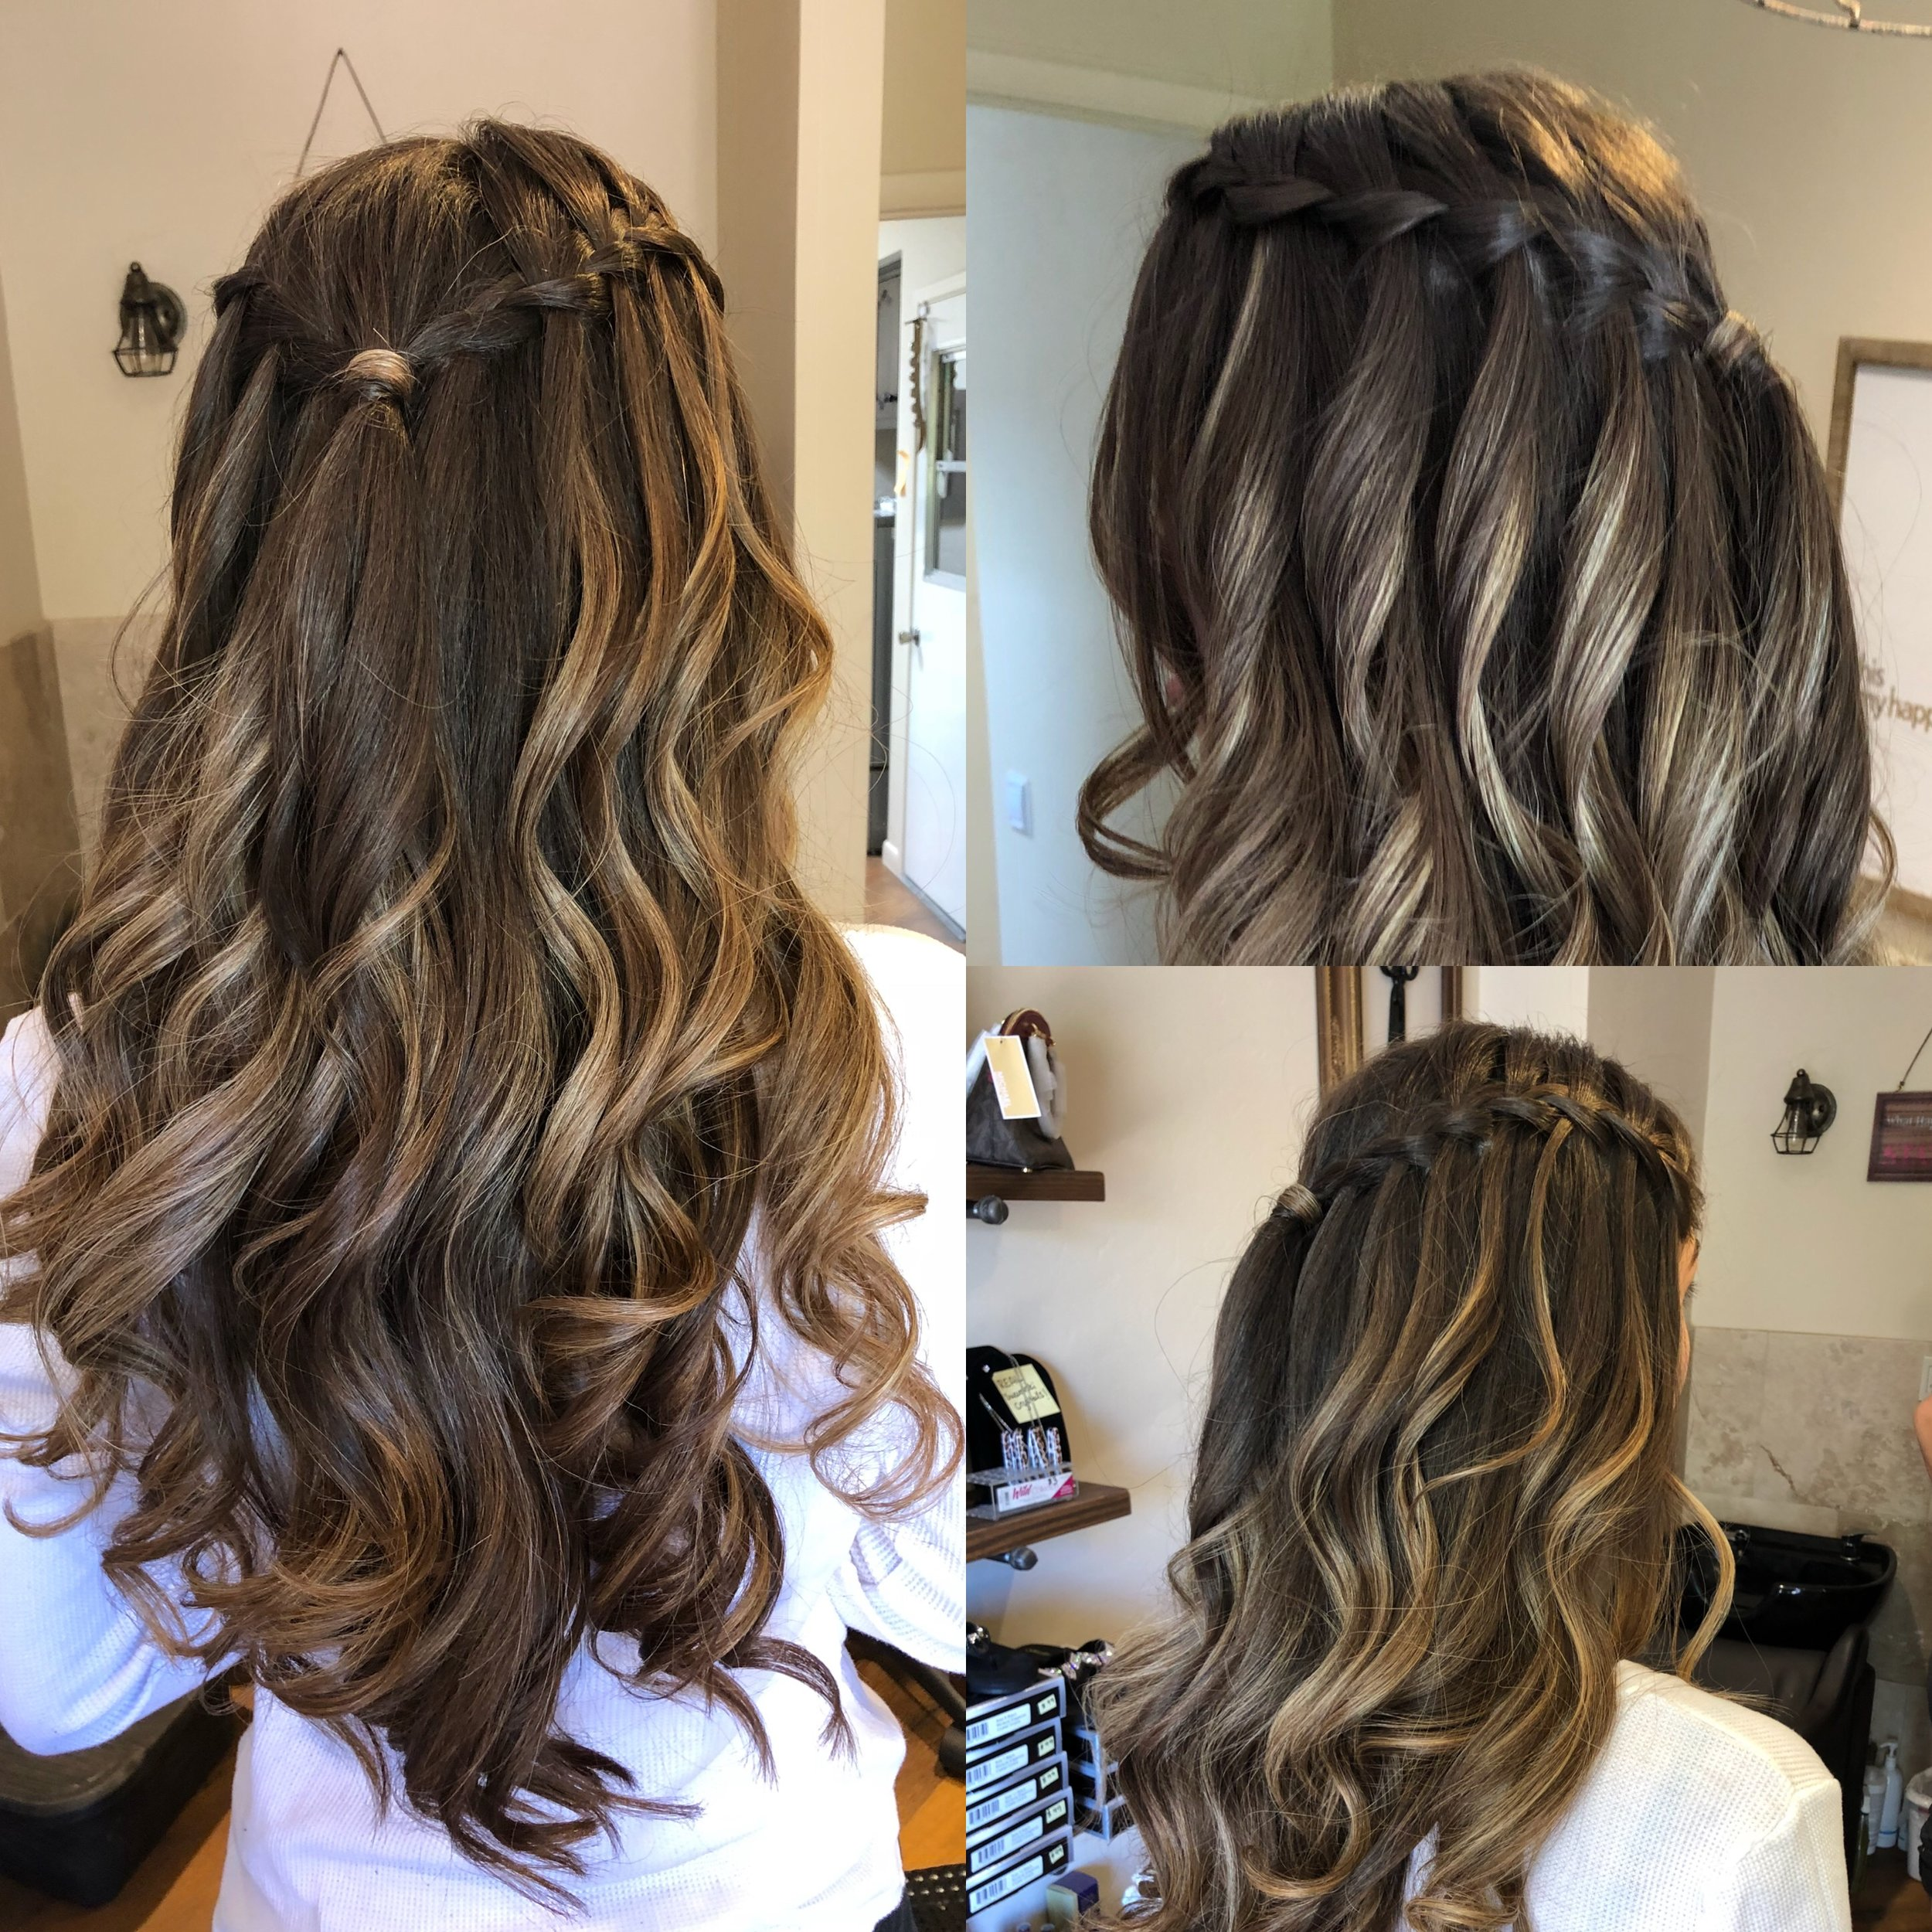 Prom Curls with Waterfall Braids